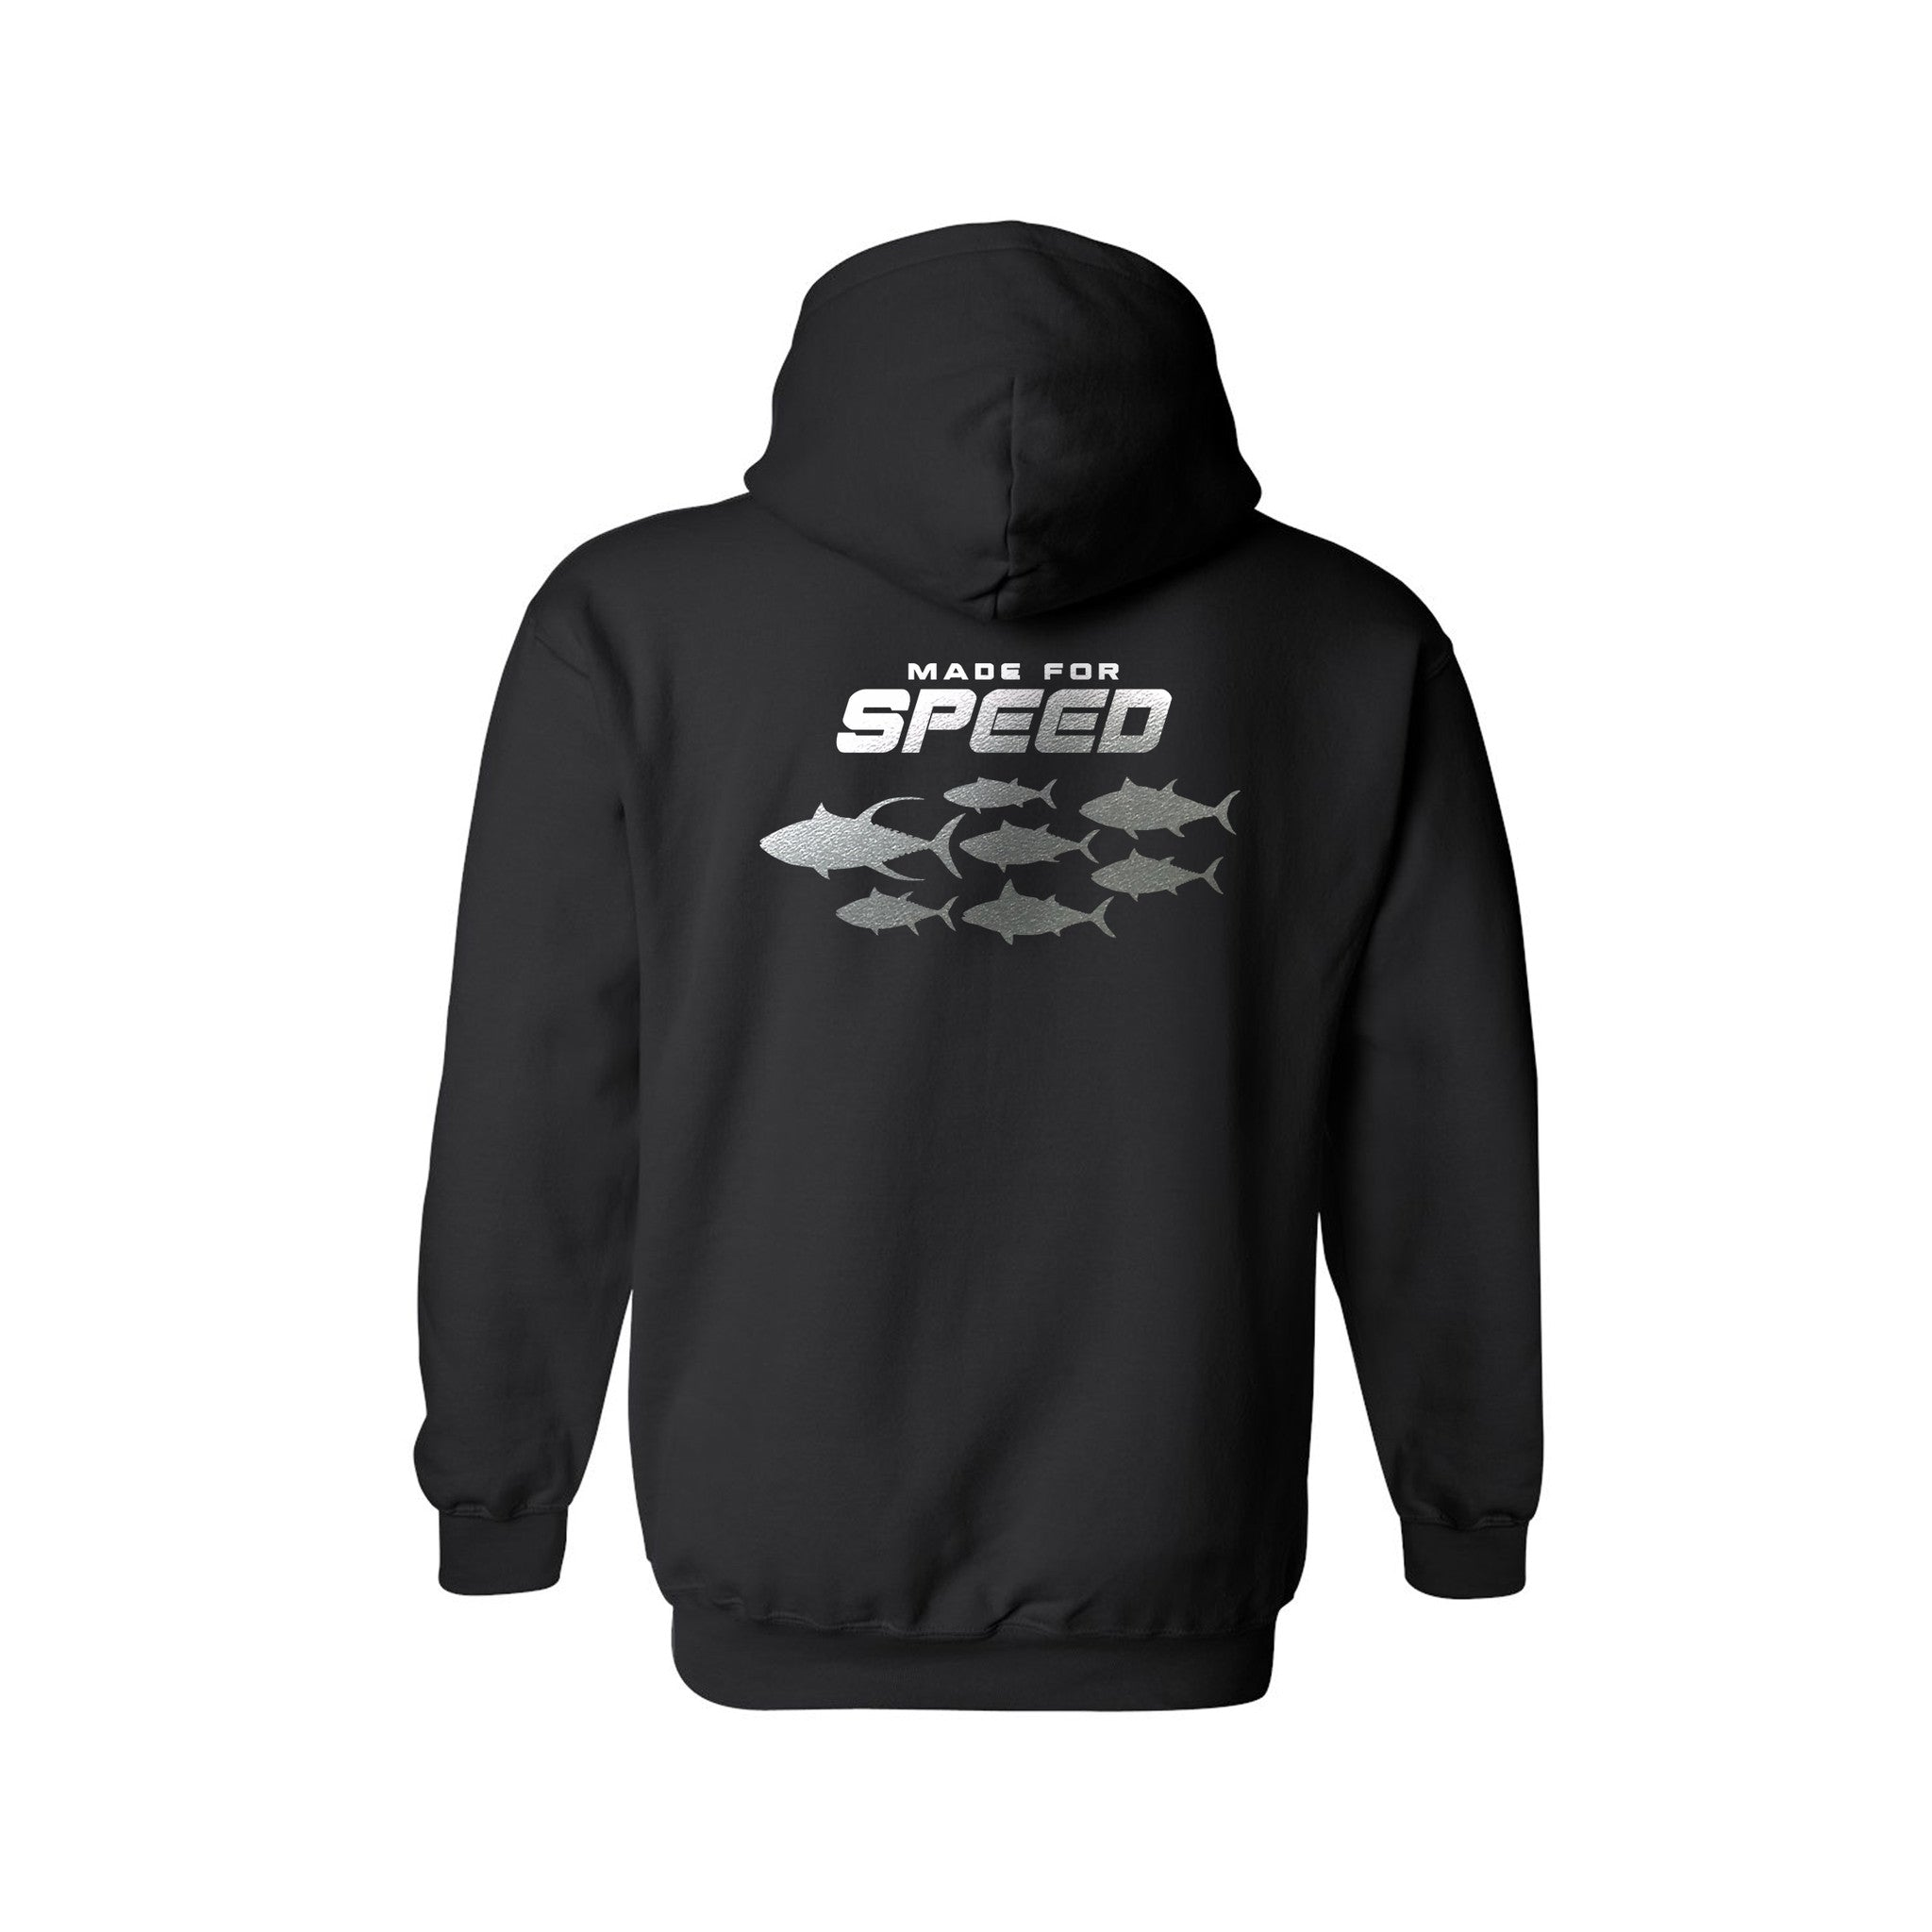 SportyFish Silhouette Series Silver Print Black Hoodie: Made for Speed